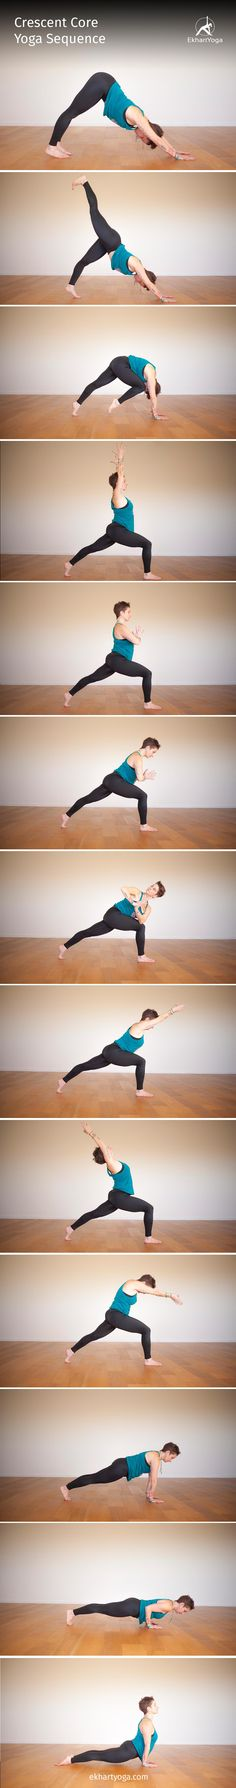 A Crescent Core Yoga Sequence to get your heart rate going and your body grounded. Namaste, Restorative Yoga Poses, Yoga For Back Pain, Basic Yoga, Iyengar Yoga, Yoga Tips, Yoga Lifestyle, Yoga Sequences, Yoga Videos